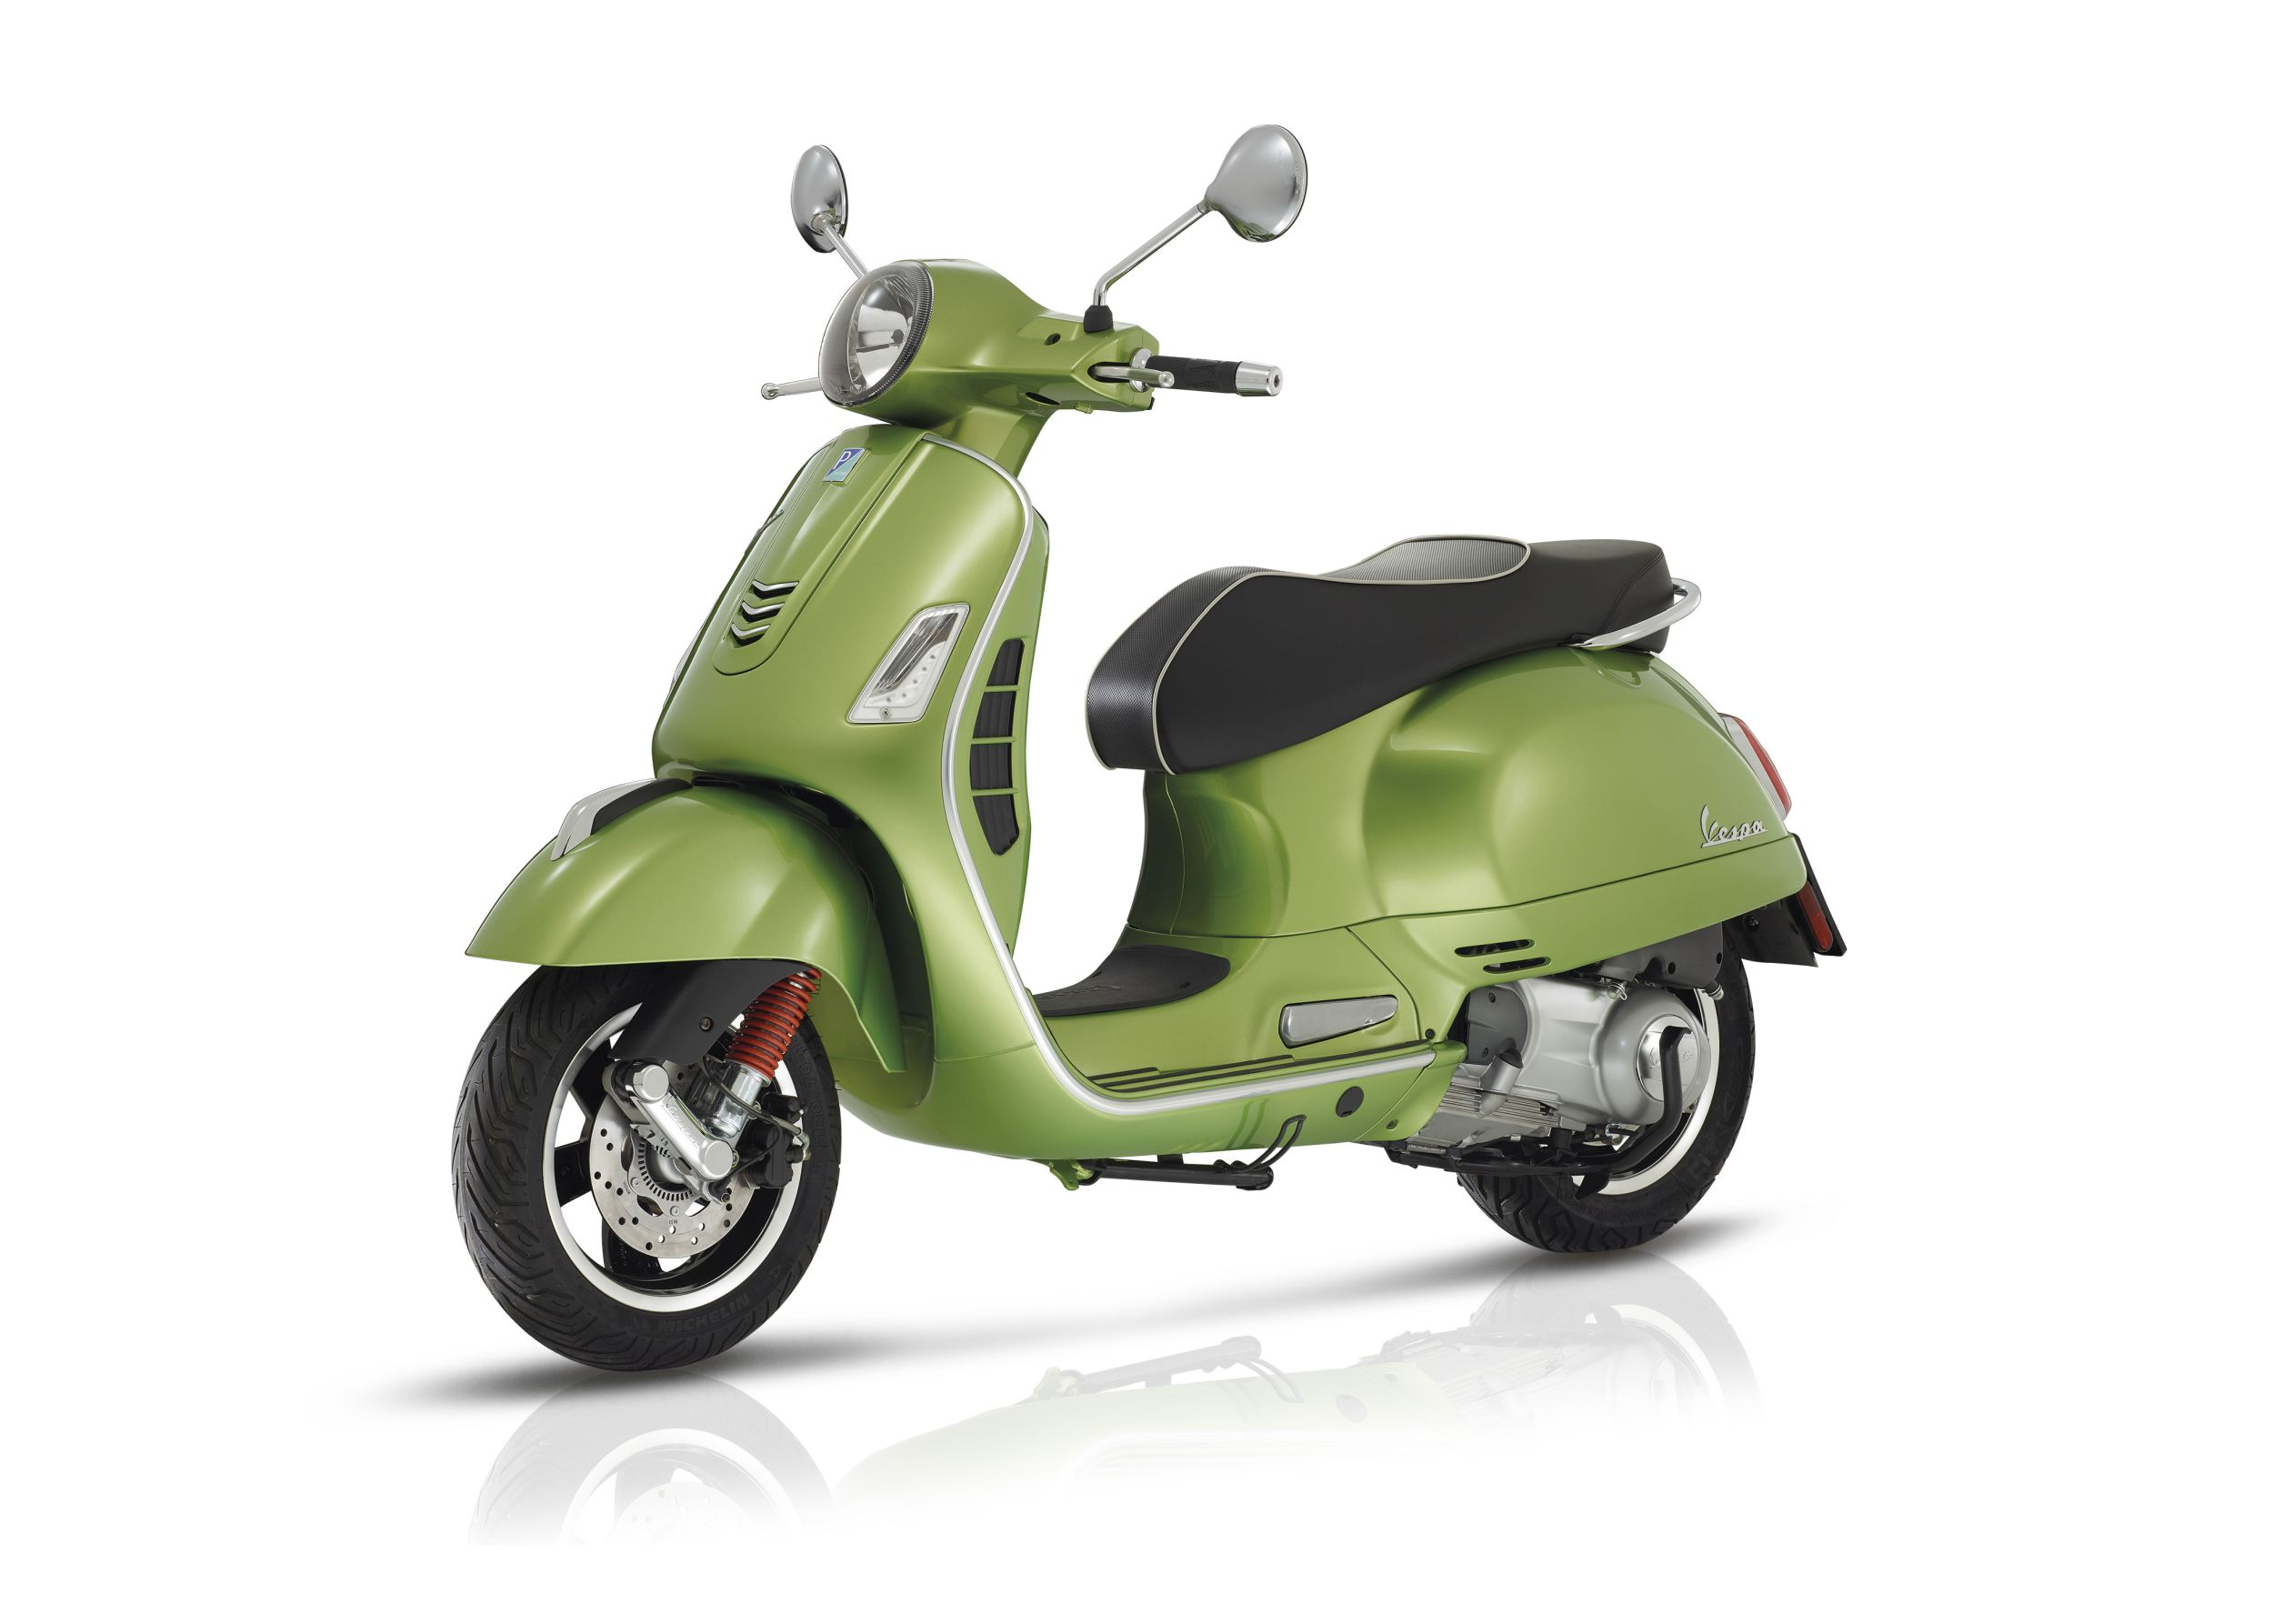 vespa gts 125 ie super all technical data of the model gts 125 ie super from vespa. Black Bedroom Furniture Sets. Home Design Ideas